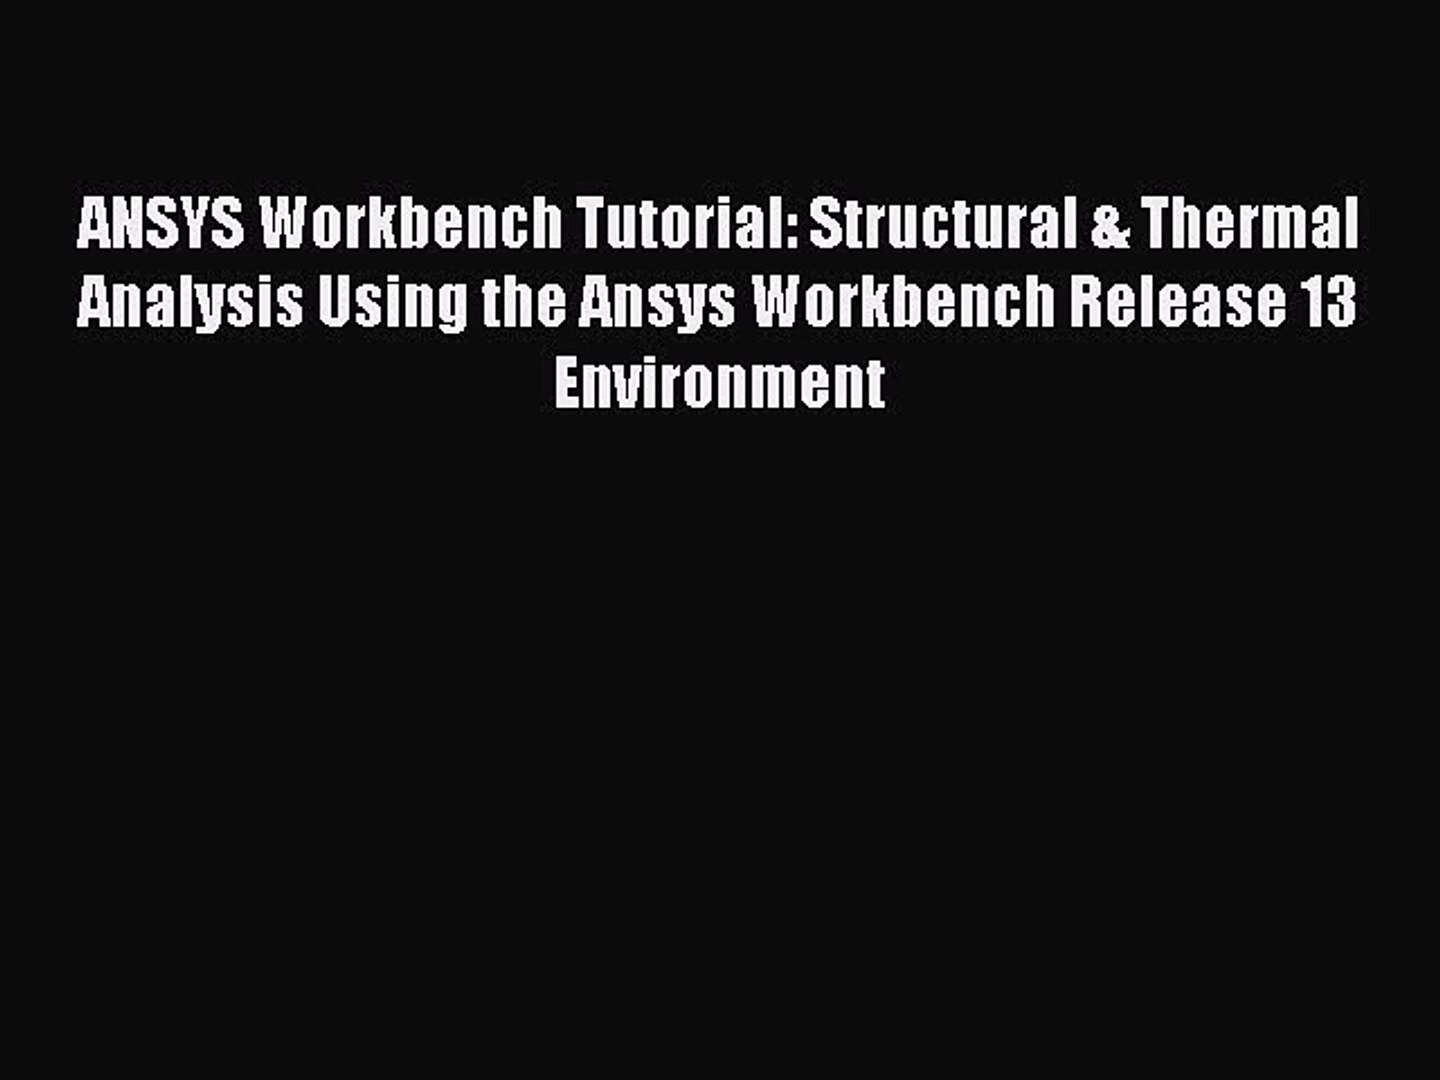 [PDF Download] ANSYS Workbench Tutorial: Structural & Thermal Analysis  Using the Ansys Workbench